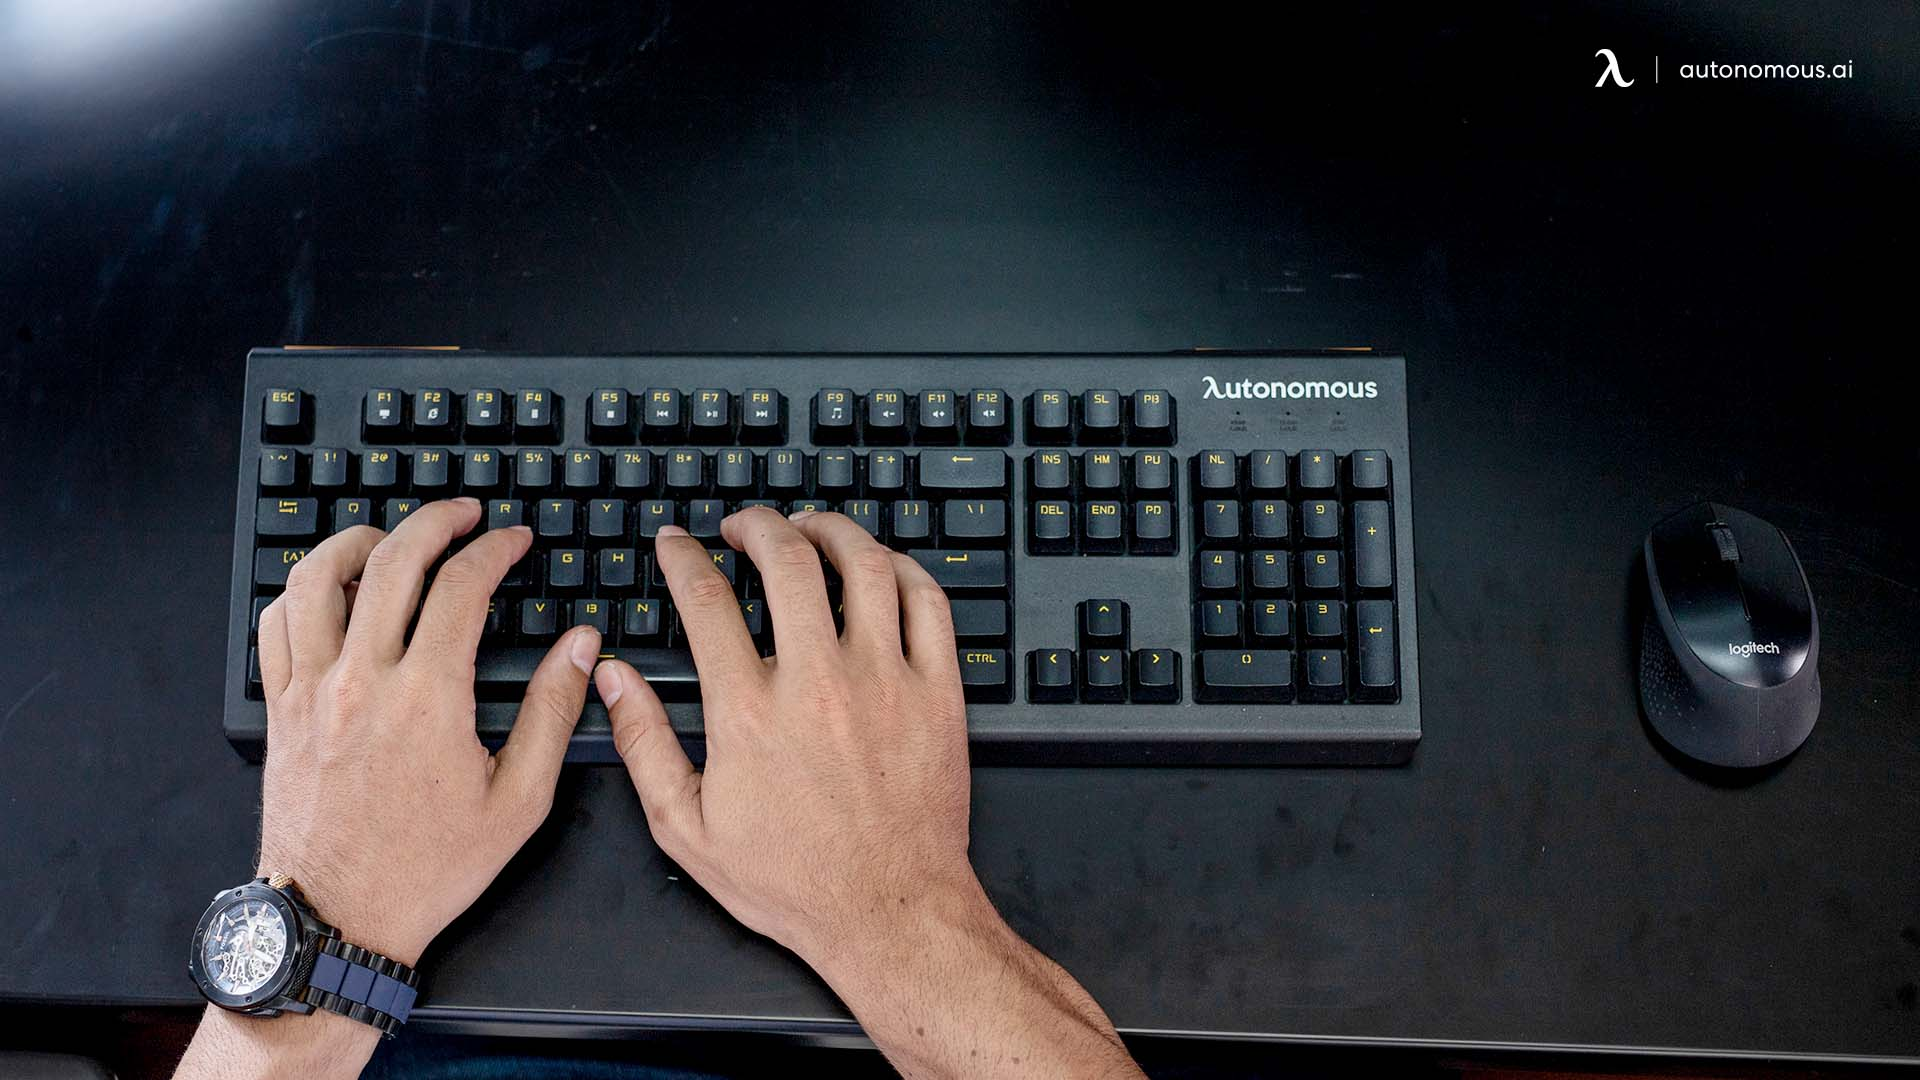 Bring an Ergonomic Keyboard and Mouse